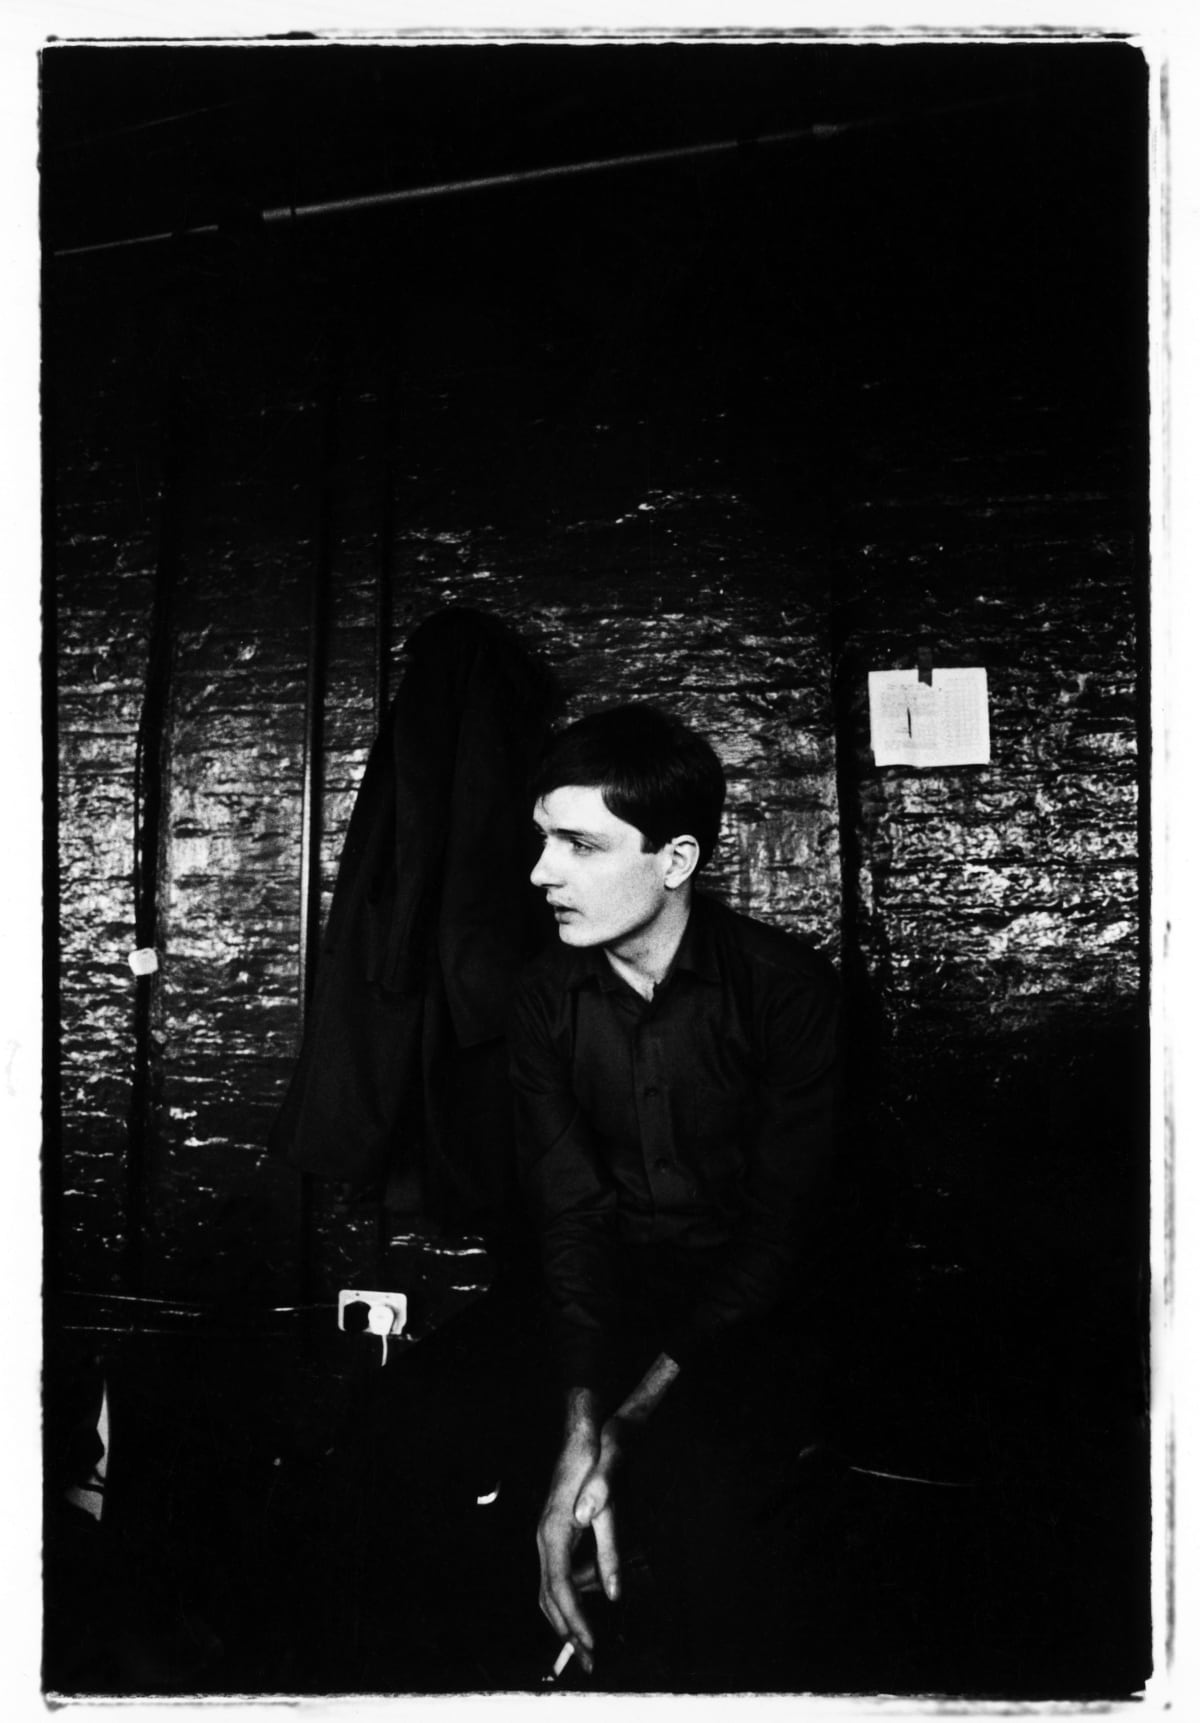 Kevin Cummins 11.Ian Curtis, Joy Division TJ Davidson's rehearsal room Little Peter Street, Manchester 19 August 1979, 2006 Gelatin-silver print. Edition of 75 40.6 x 50.8 cm 16 x 20 in Edition of 75